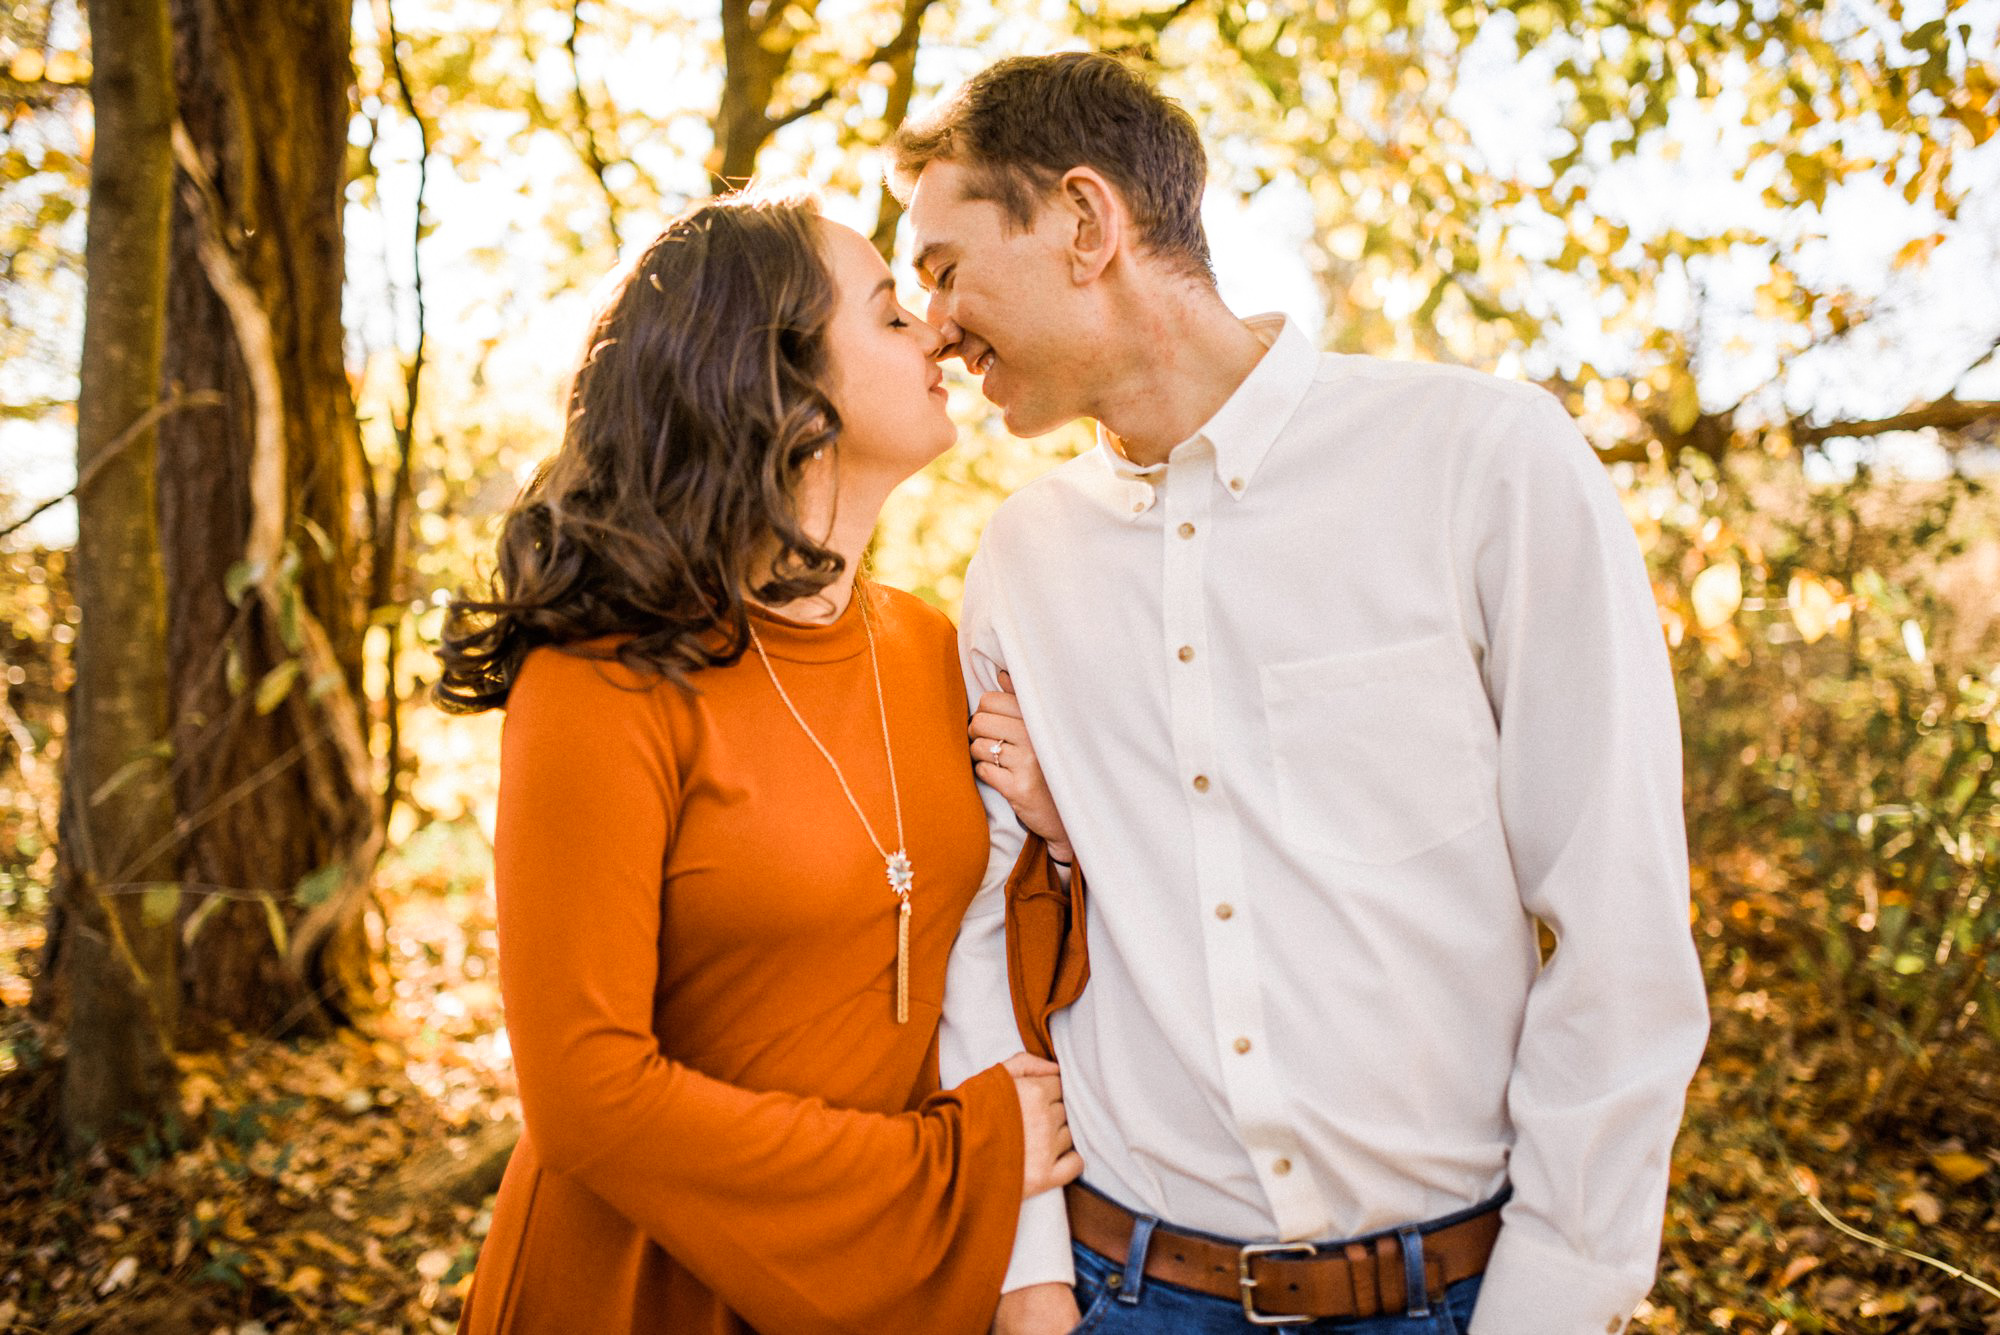 engagement-photography-88-love-stories_0004.jpg